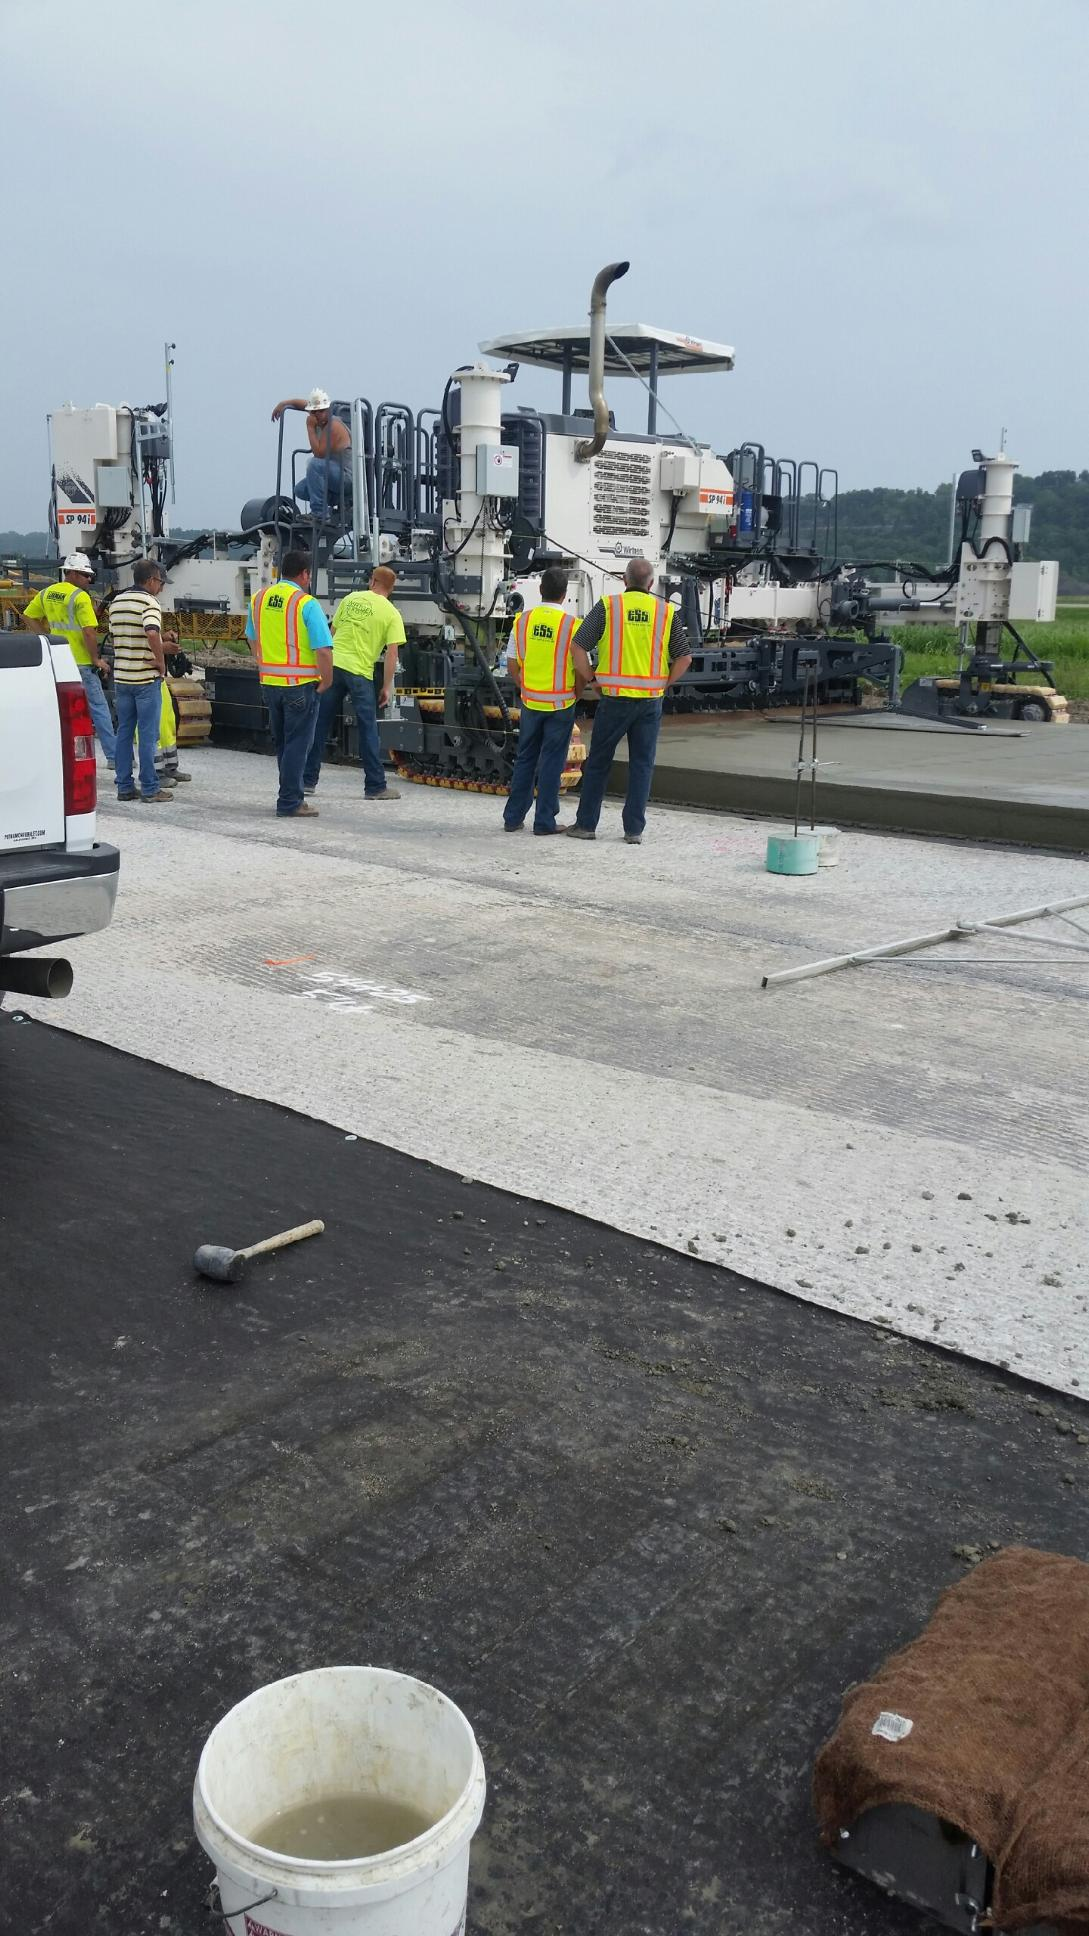 Lehman construction Paving Runway 12/30 at Jefferson City Airport - Catches attention of other contractors